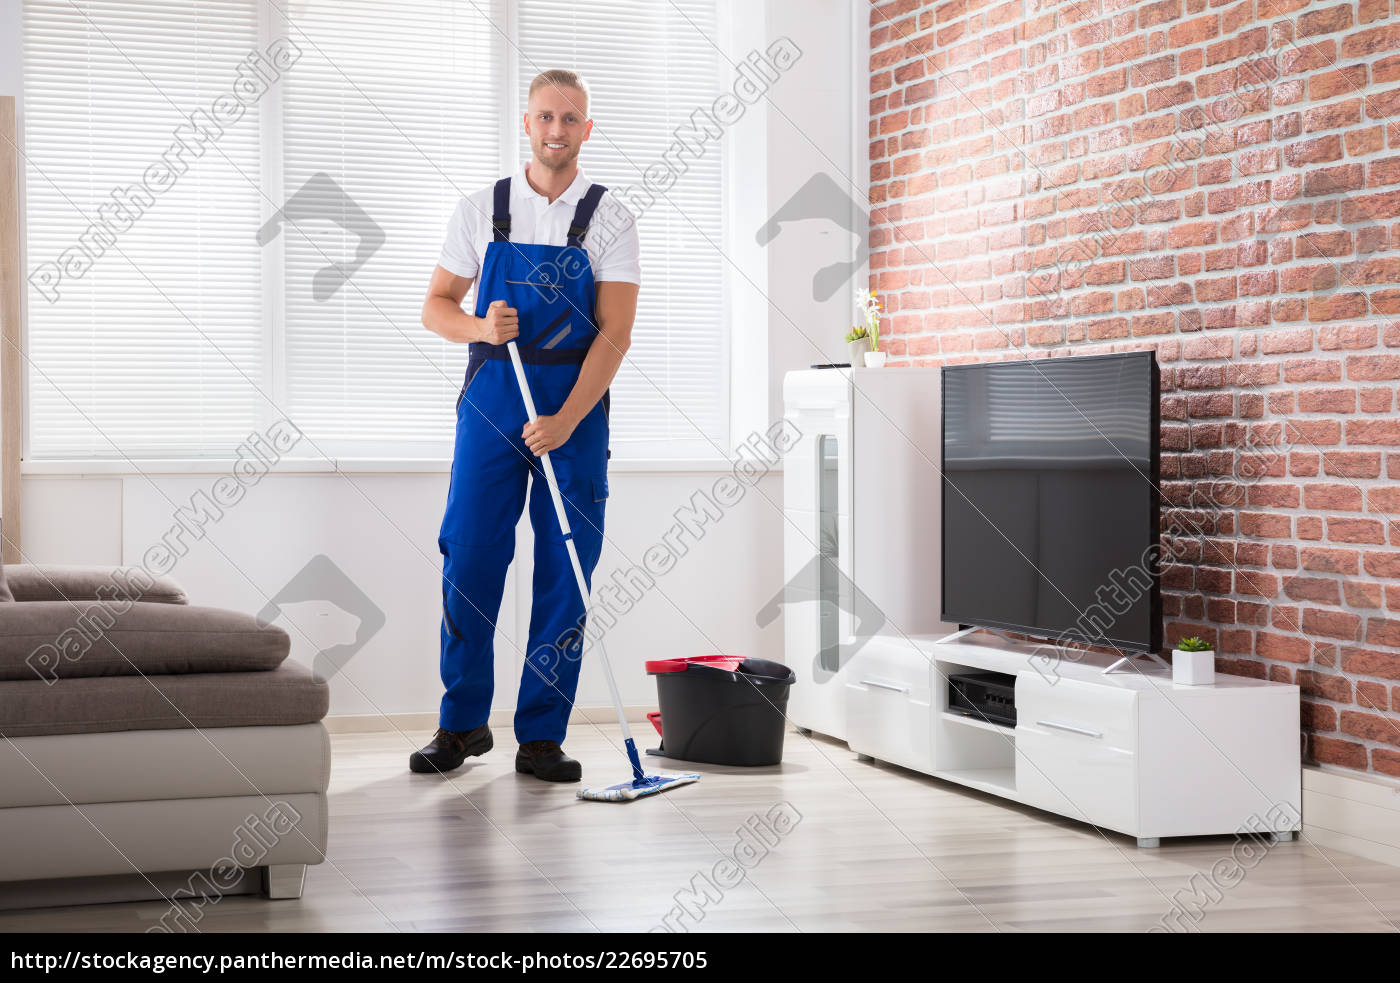 male, janitor, sweeping, floor, at, home - 22695705